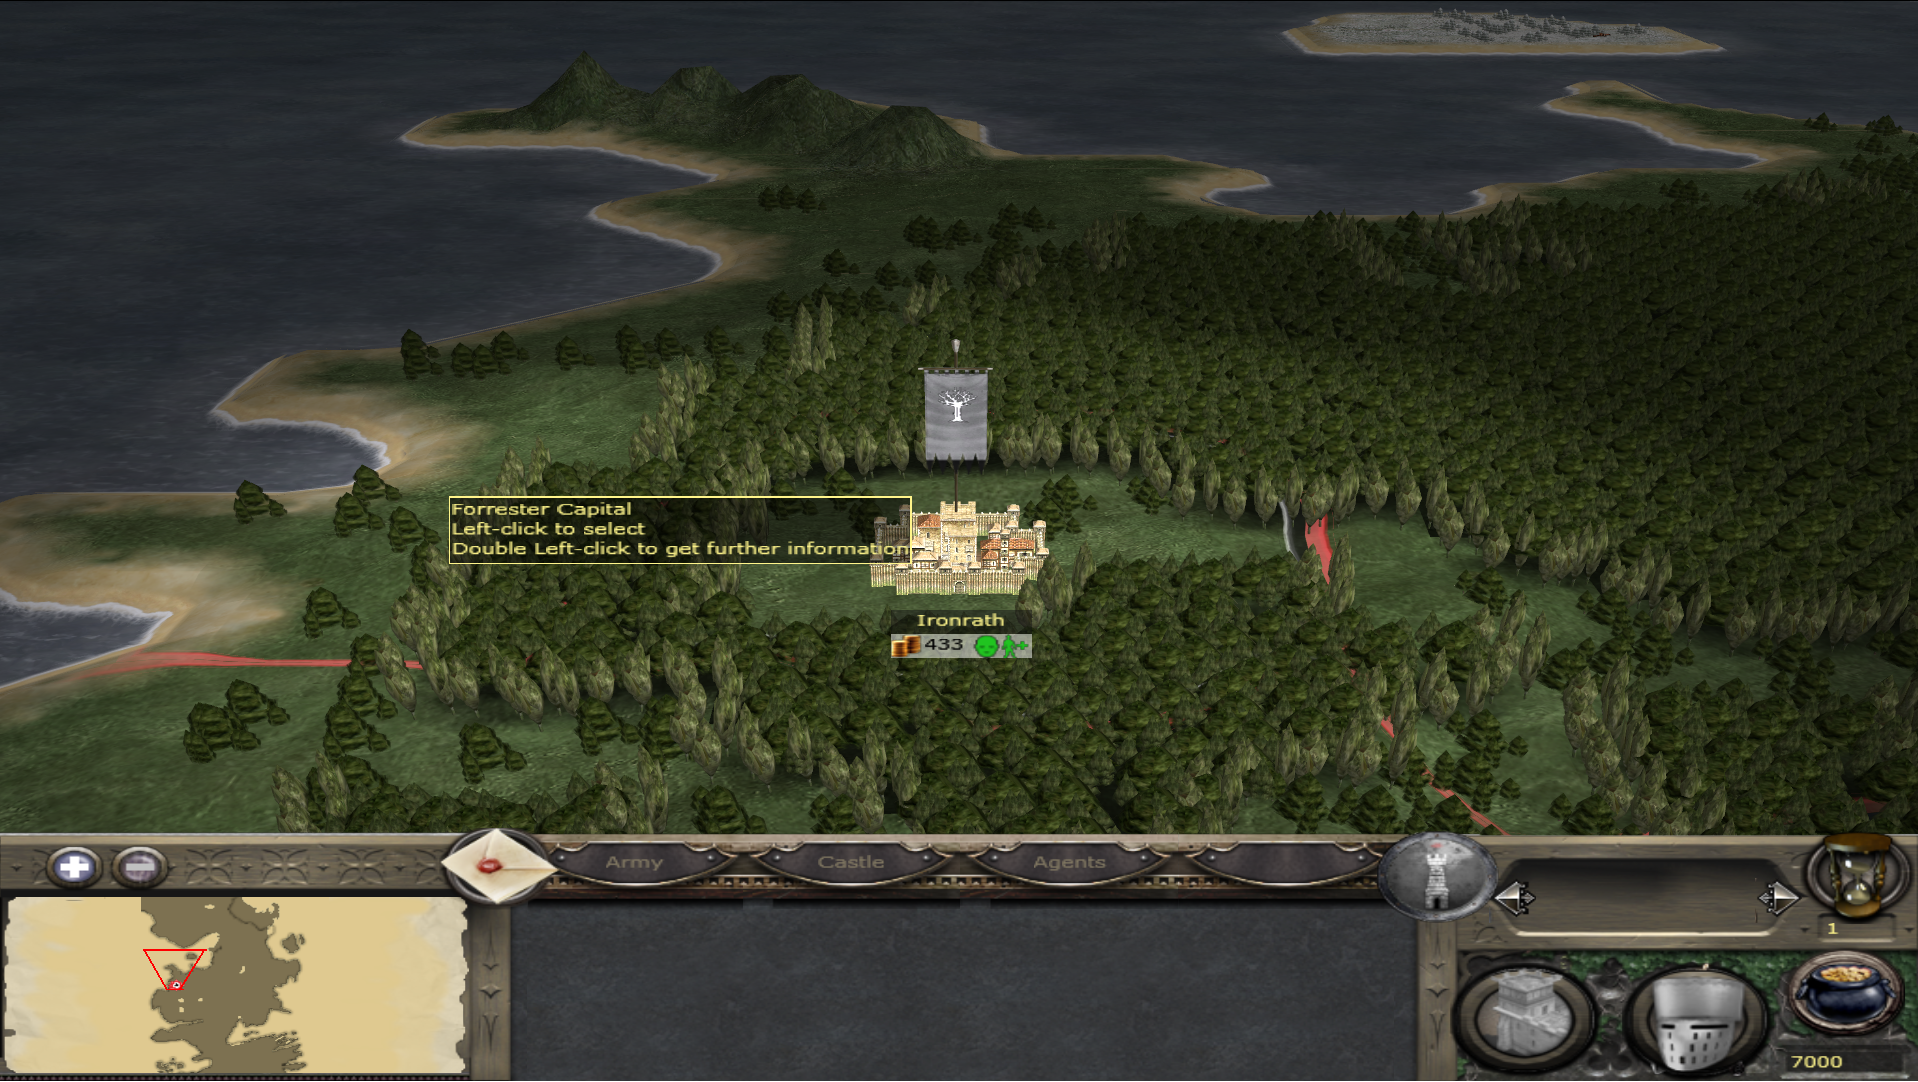 You can play as House Forester